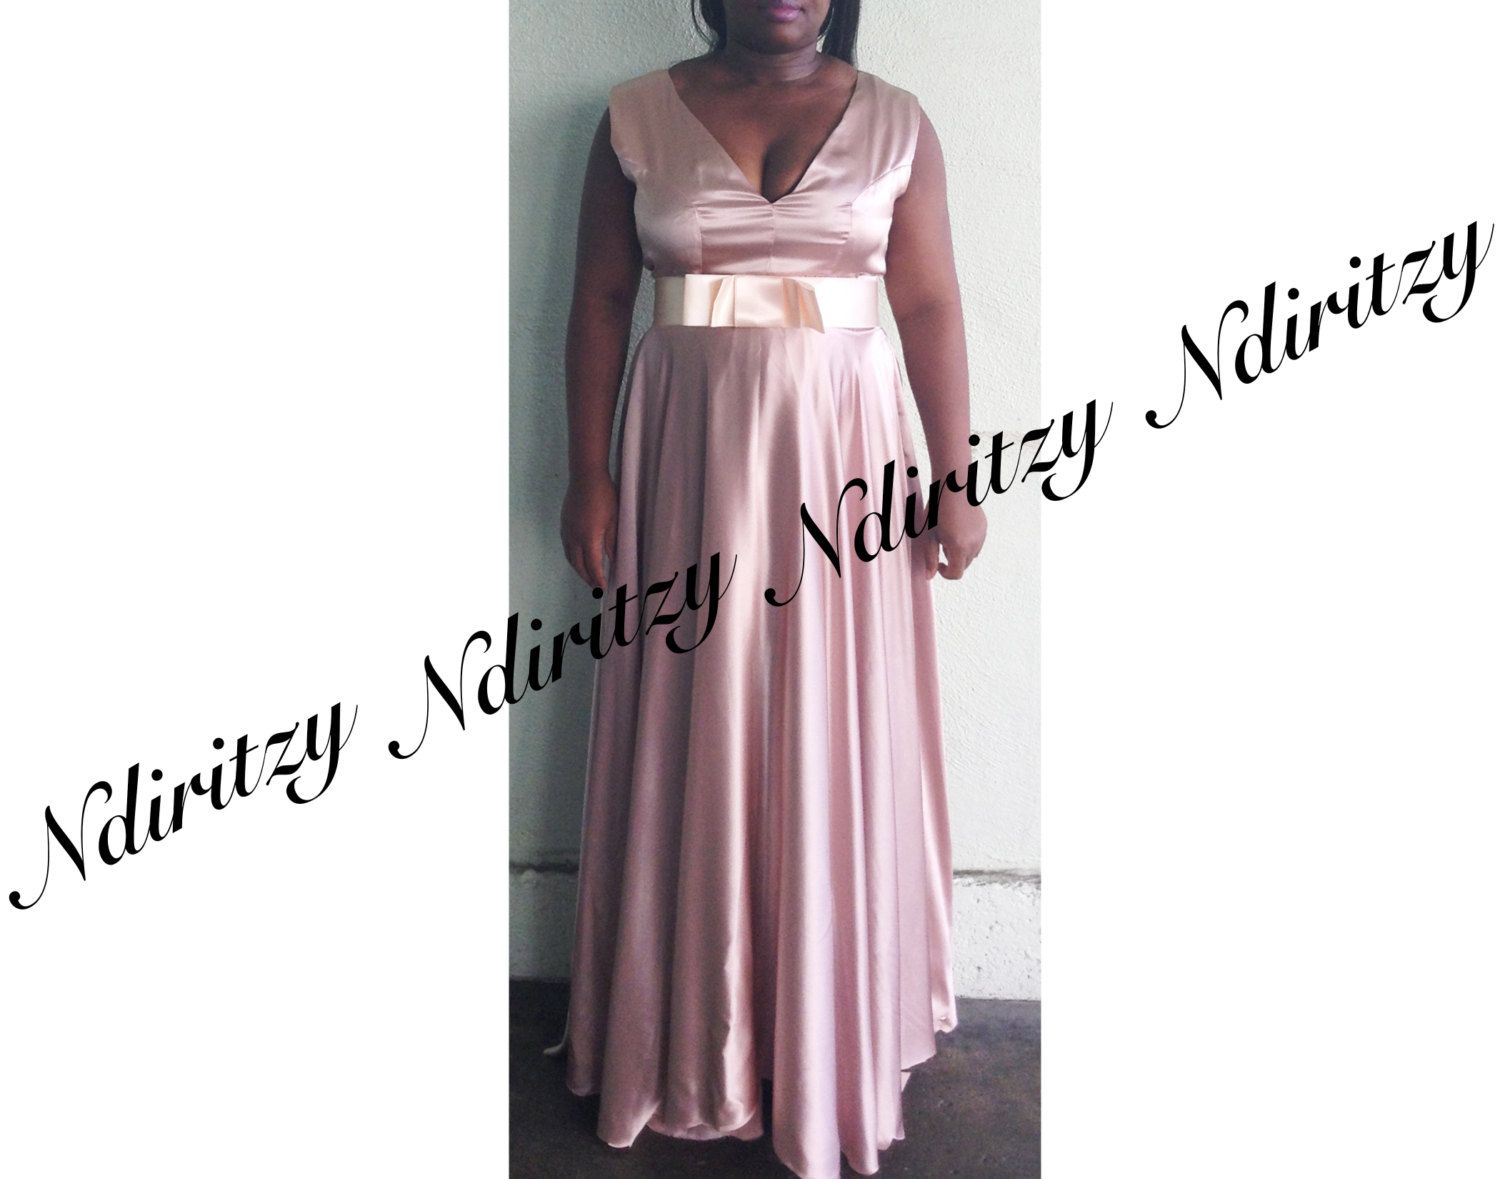 Dress plus size dress v neck dress blush silk charmeuse dress shop for on etsy the place to express your creativity through the buying and selling of handmade and vintage goods ombrellifo Gallery